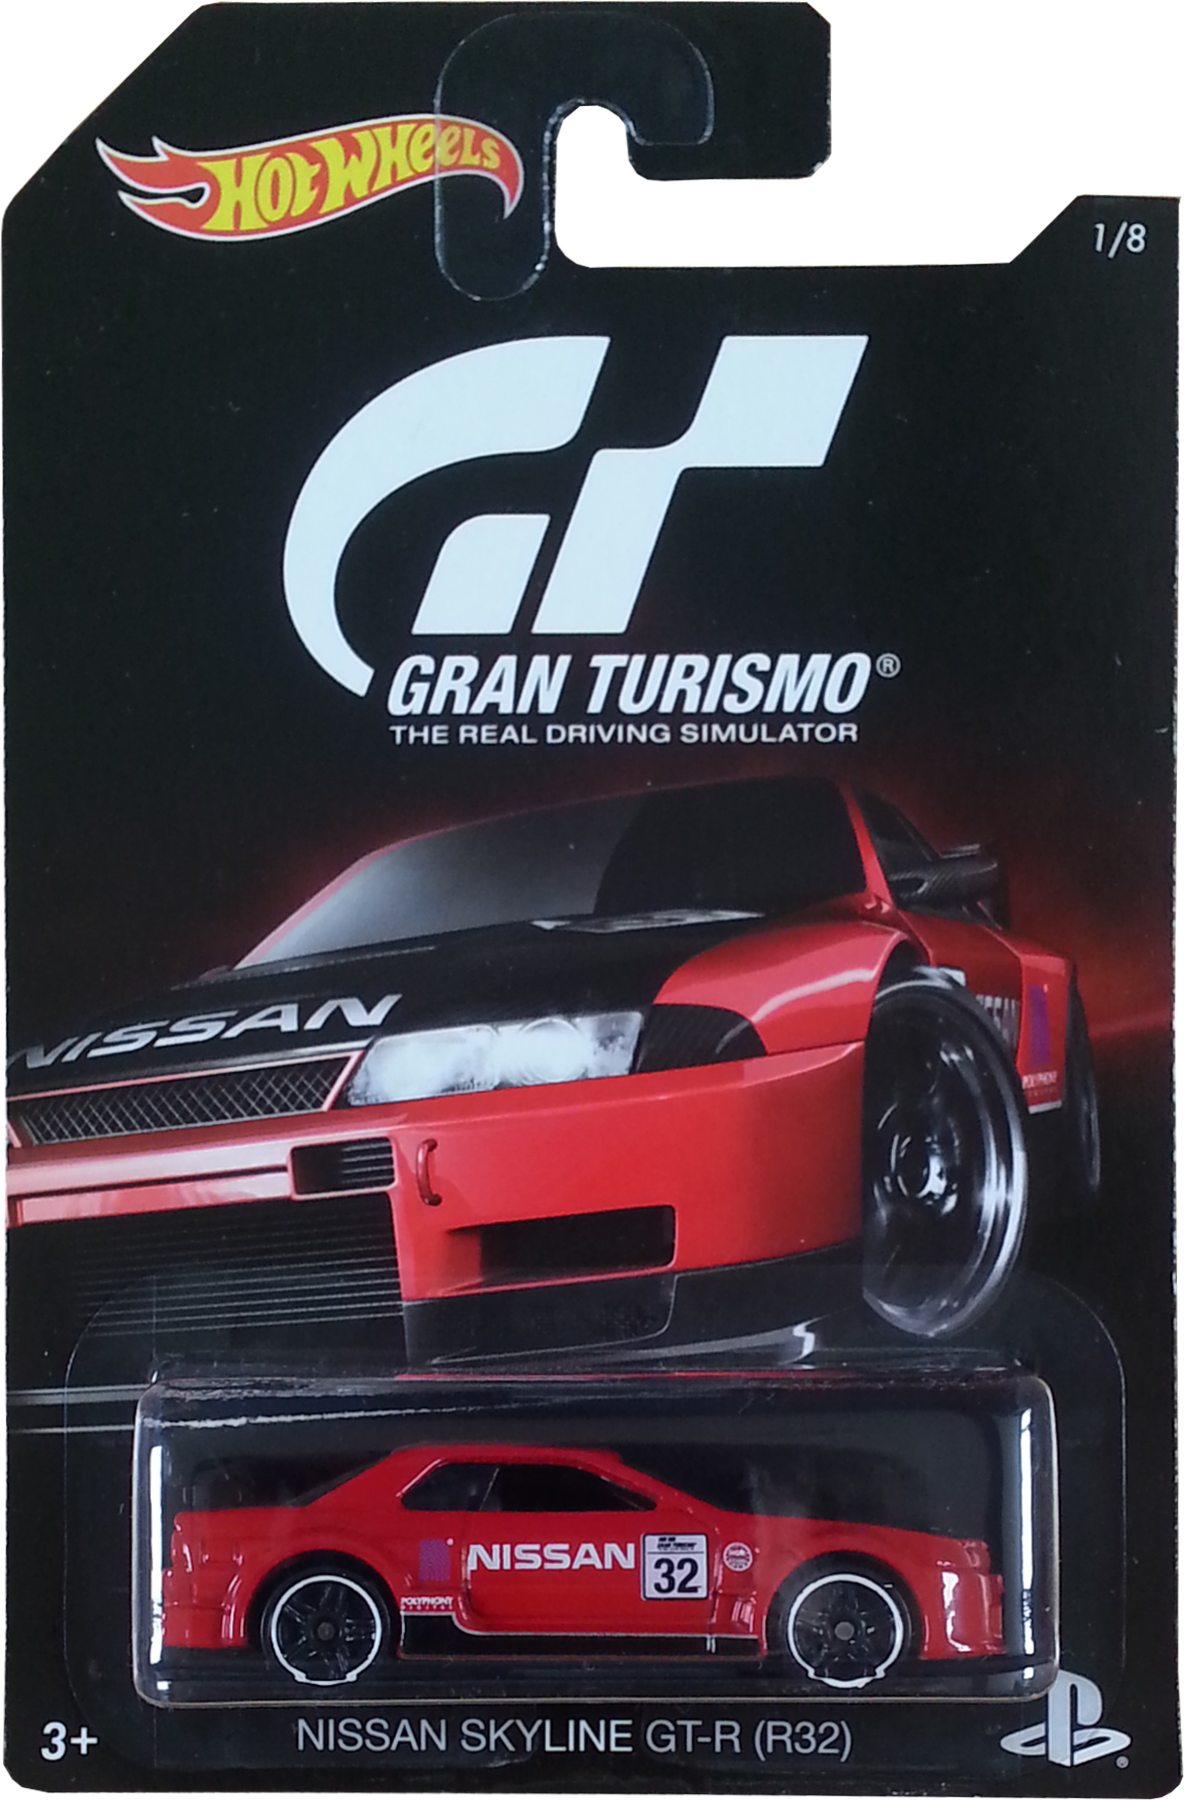 Nissan Skyline GT-R (R32) package front.png